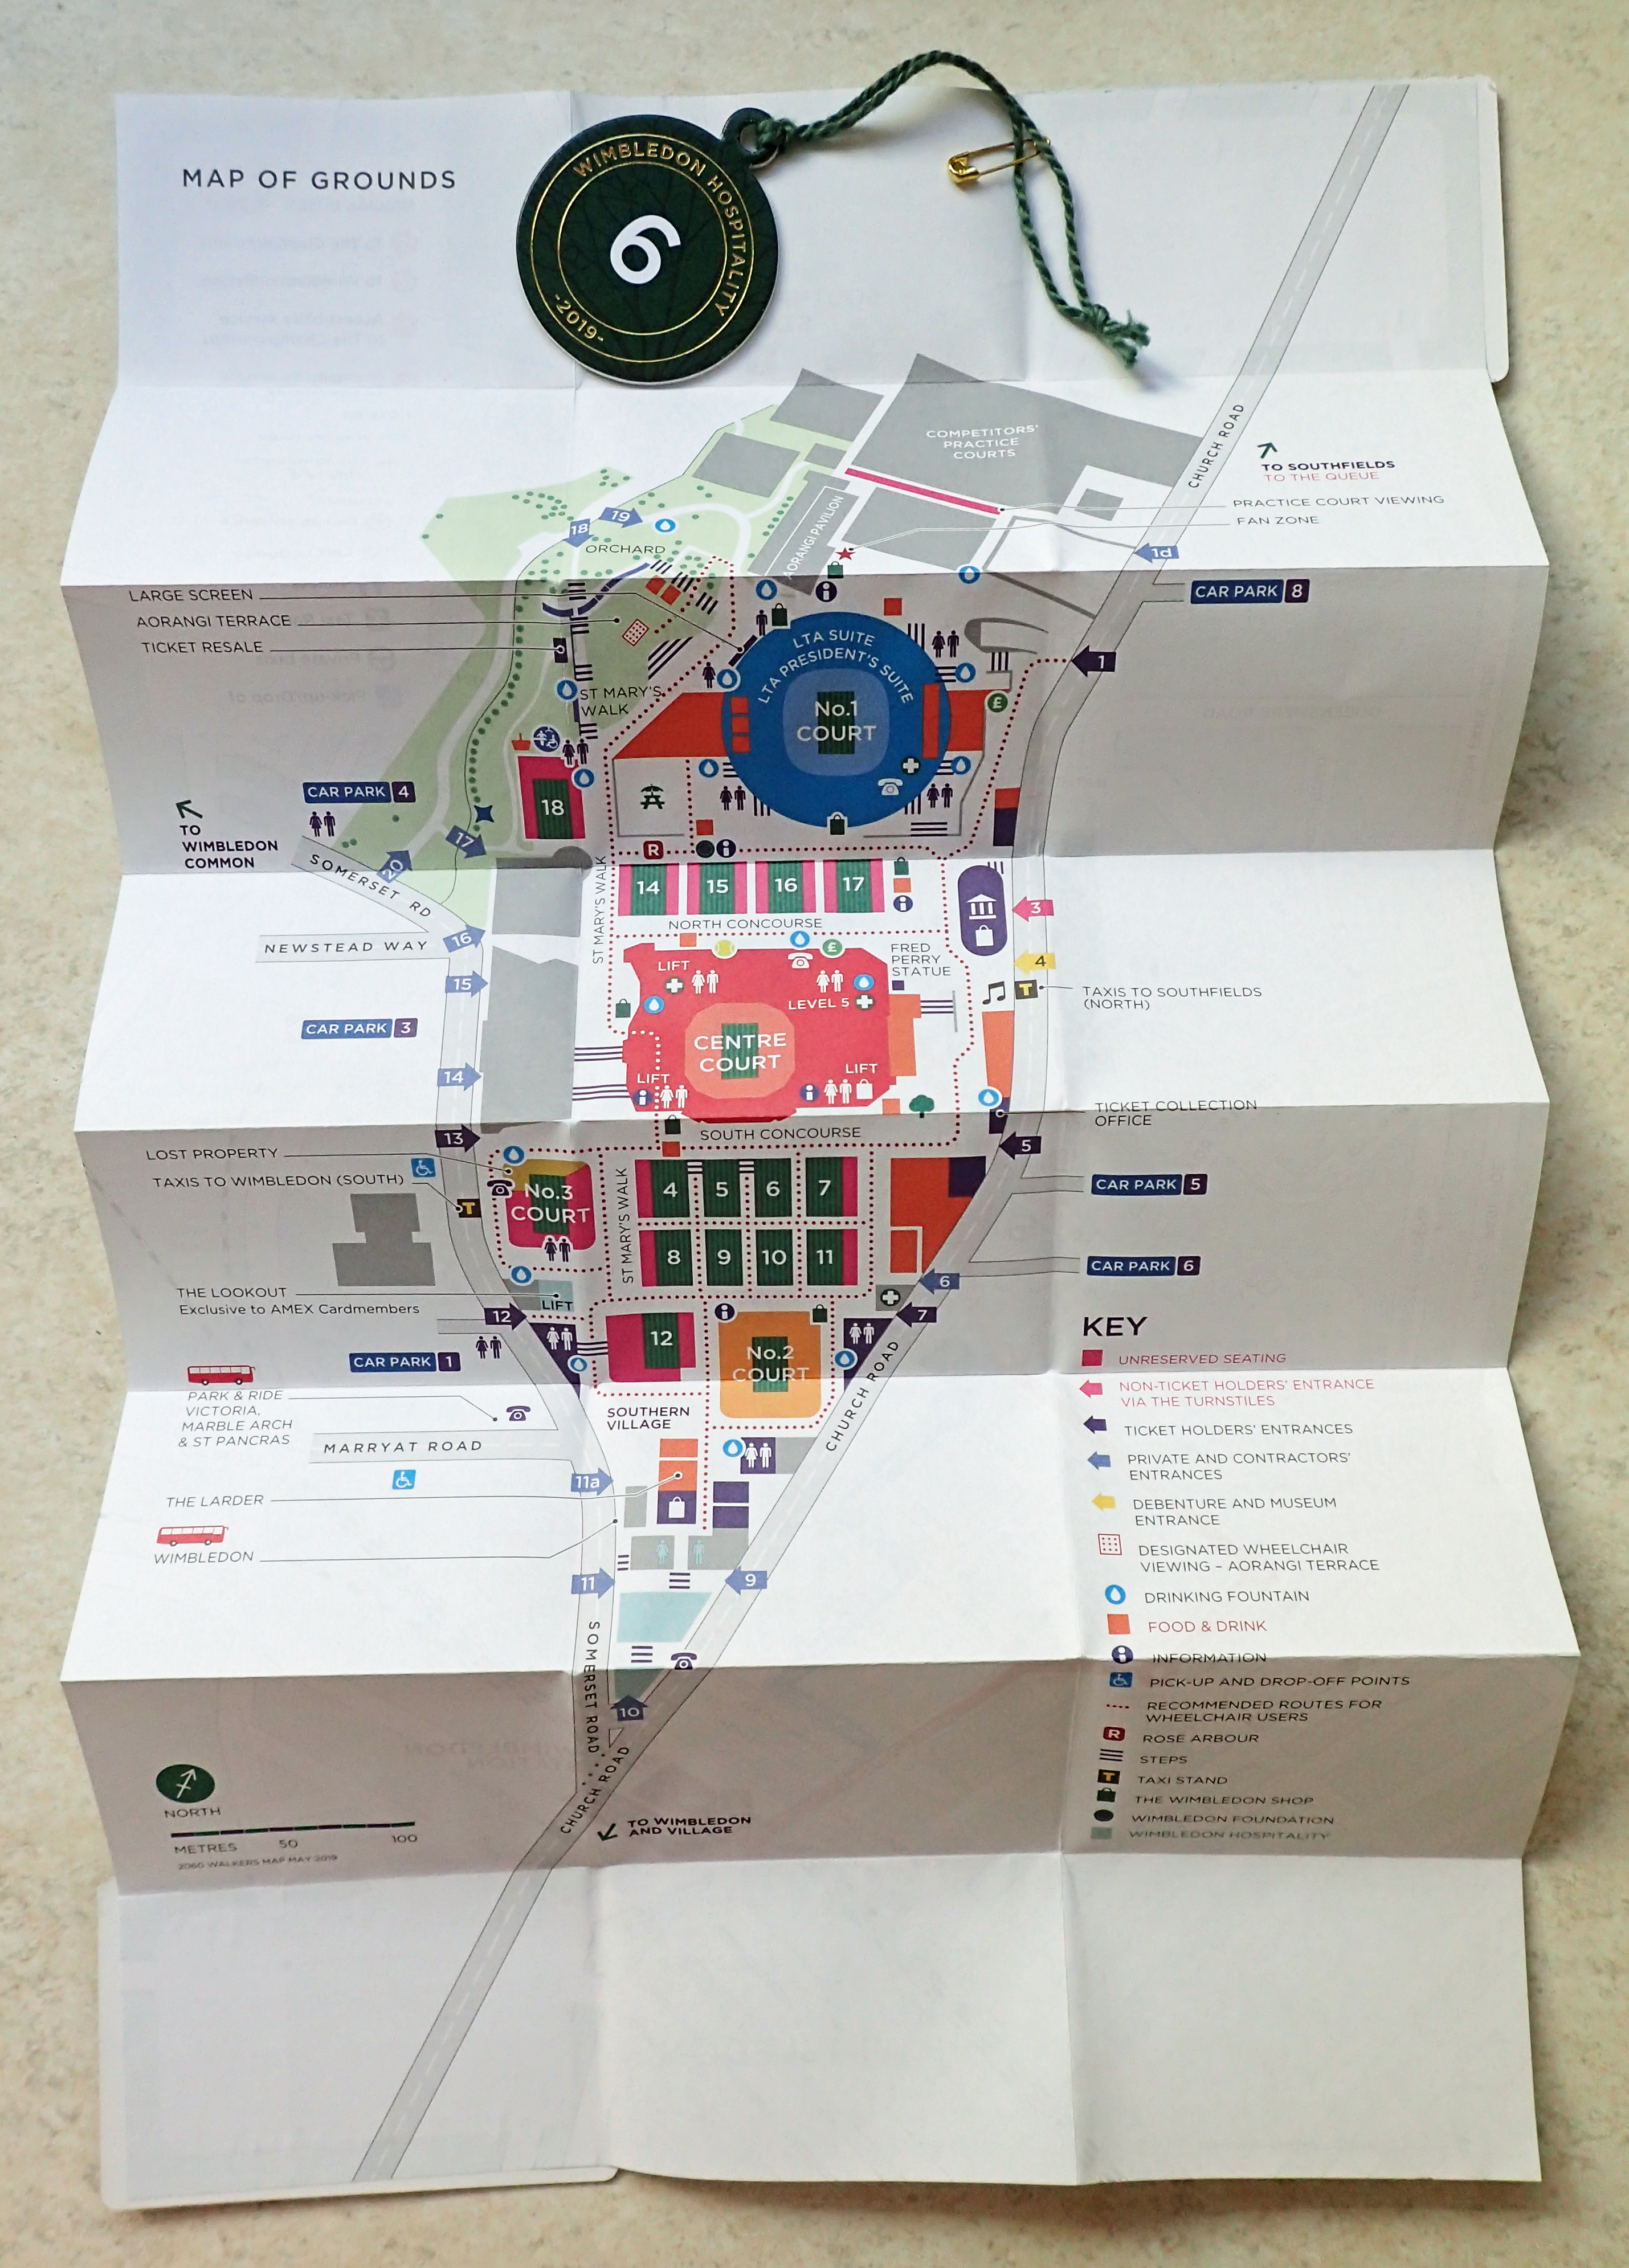 Free map given to some attendees at the 2019 Wimbledon Tennis Championship, with hospitality pass. Walkers Map 2019